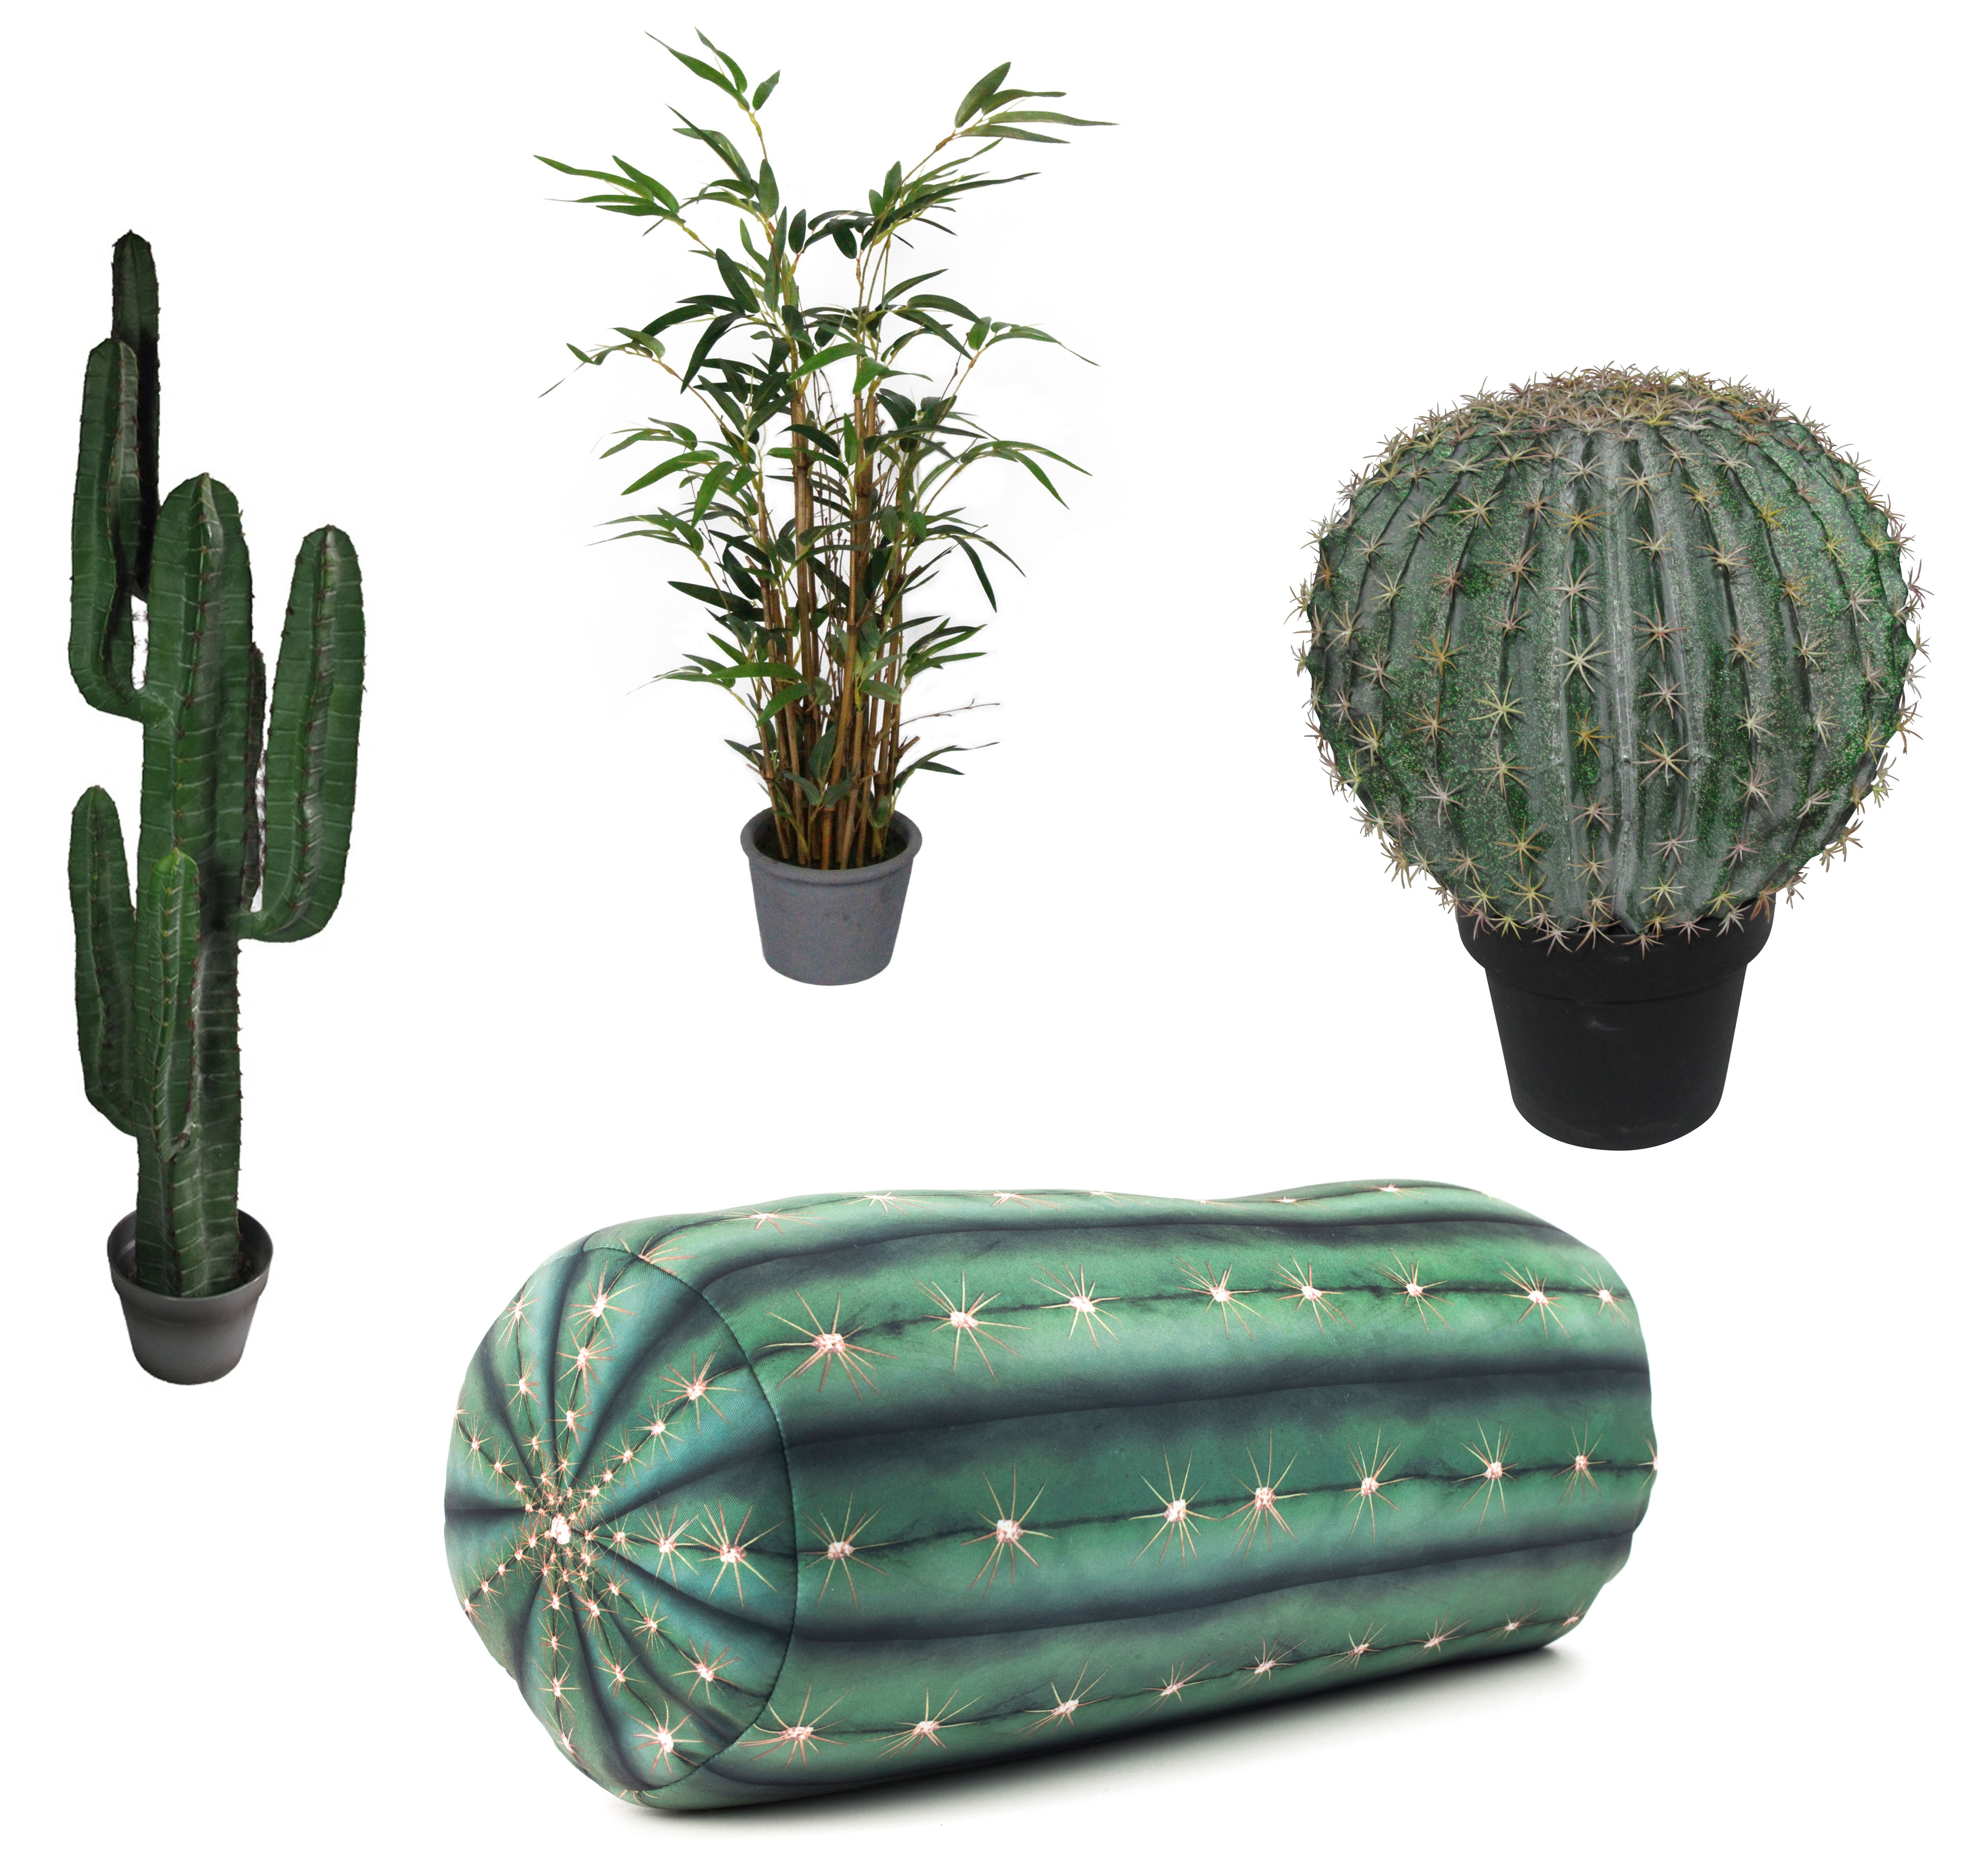 Hothouse pics: (Clockwise from left) Small Yuha Cactus, £85, Abigail Ahern/EDITION at Debenhams; Gisela Graham Safari Collection Faux Bamboo Plant, £30.99, The Contemporary Home (available July 28); Large Goldenball Cactus, currently reduced to £78 from £98, Abigail Ahern/EDITION at Debenhams, and Cactus Pillow, £17.50, Cotswold Outdoor (Abigail Ahern/Debehhams/The Contemporary Home/Cotswold Outdoor/PA)